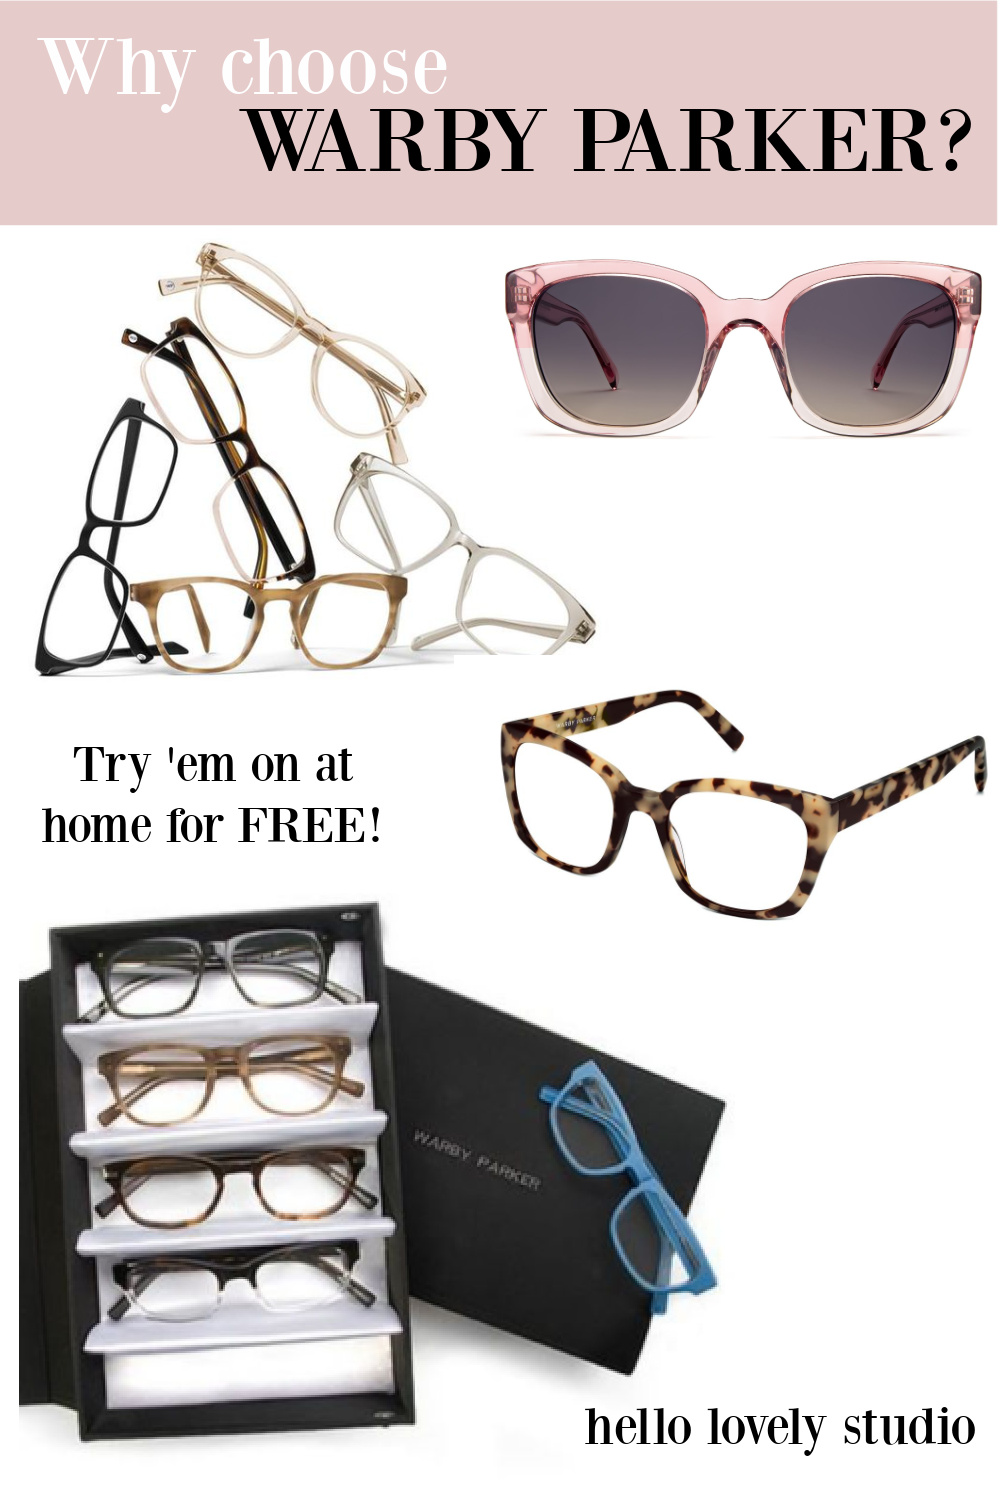 Why choose Warby Parker - Hello Lovely Studio banner